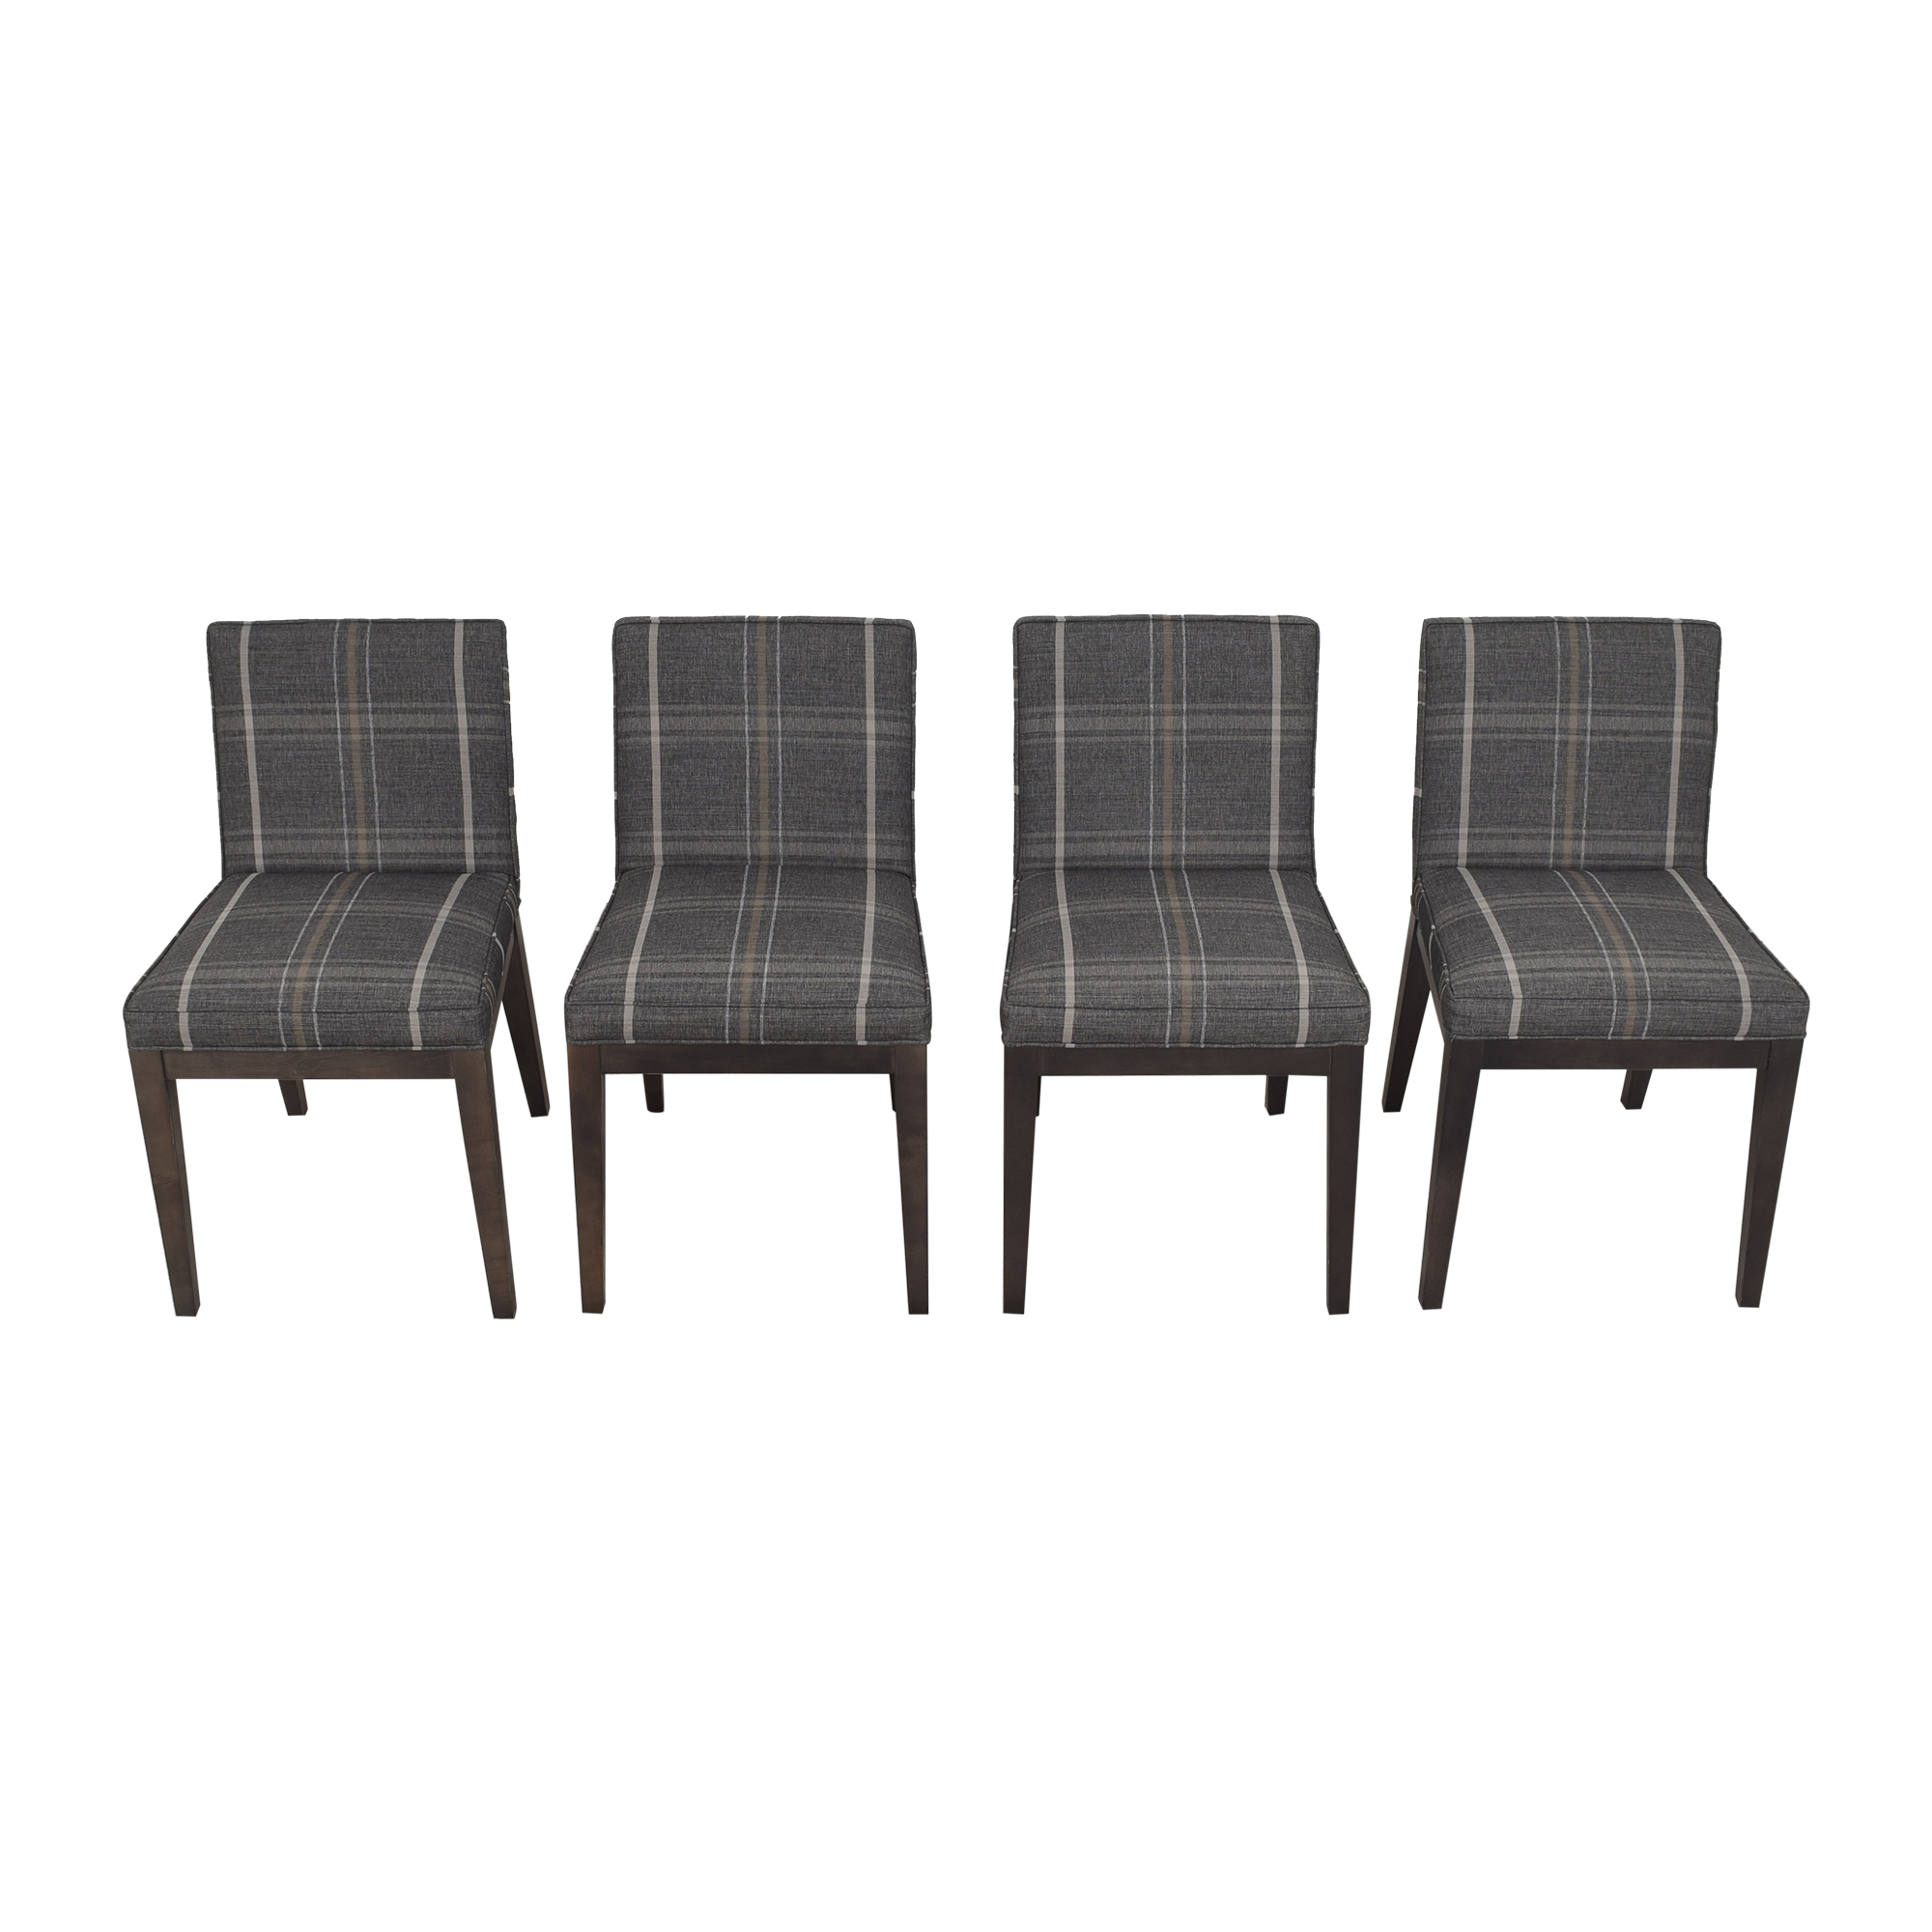 Room & Board Room & Board Ansel Plaid Dining Chairs ct